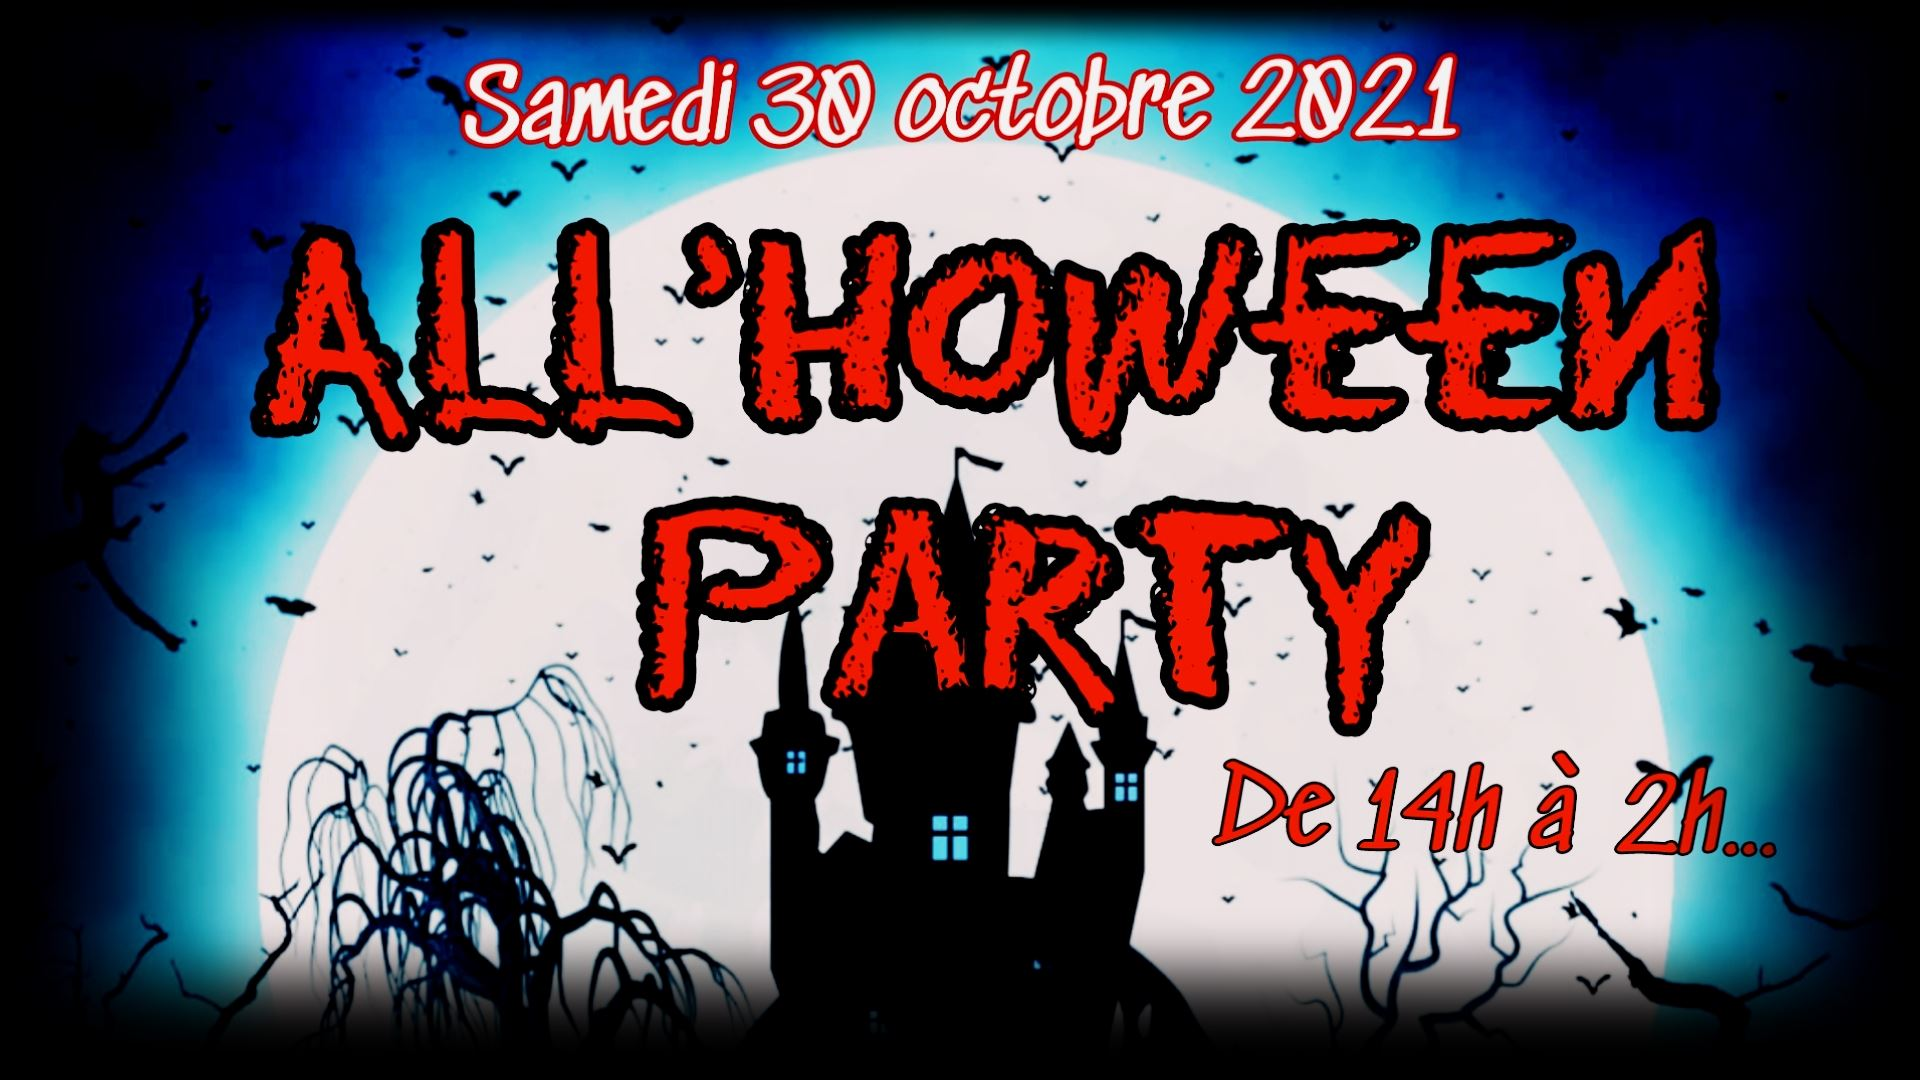 ALL'hoween party